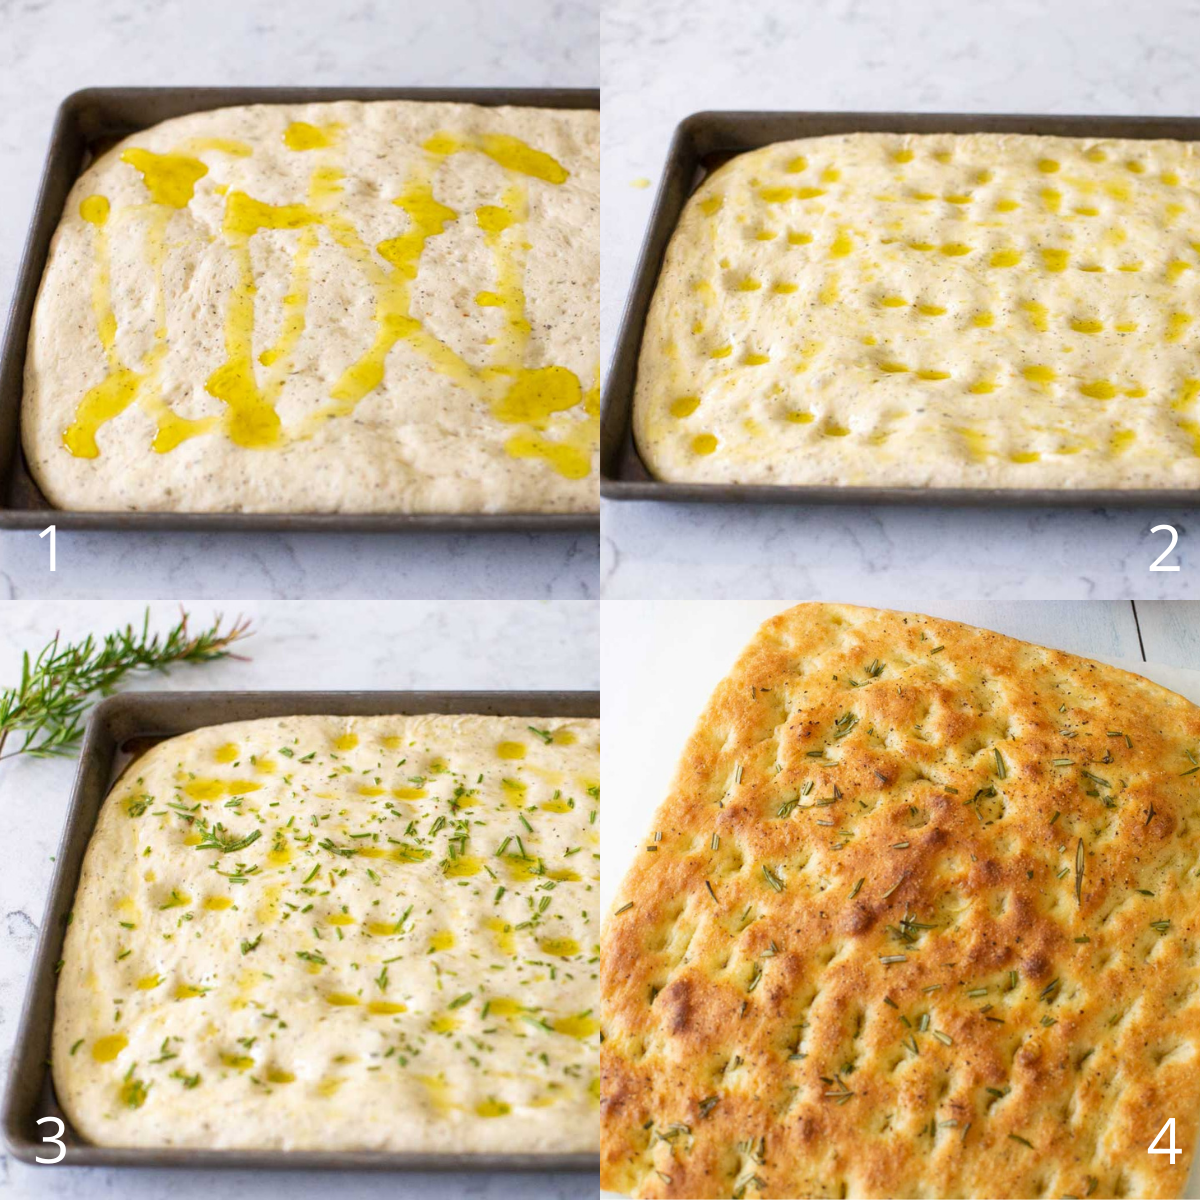 Step by step photos show how to spread the olive oil over the risen focaccia, press indents over the surface, sprinkle with herbs, and bake.